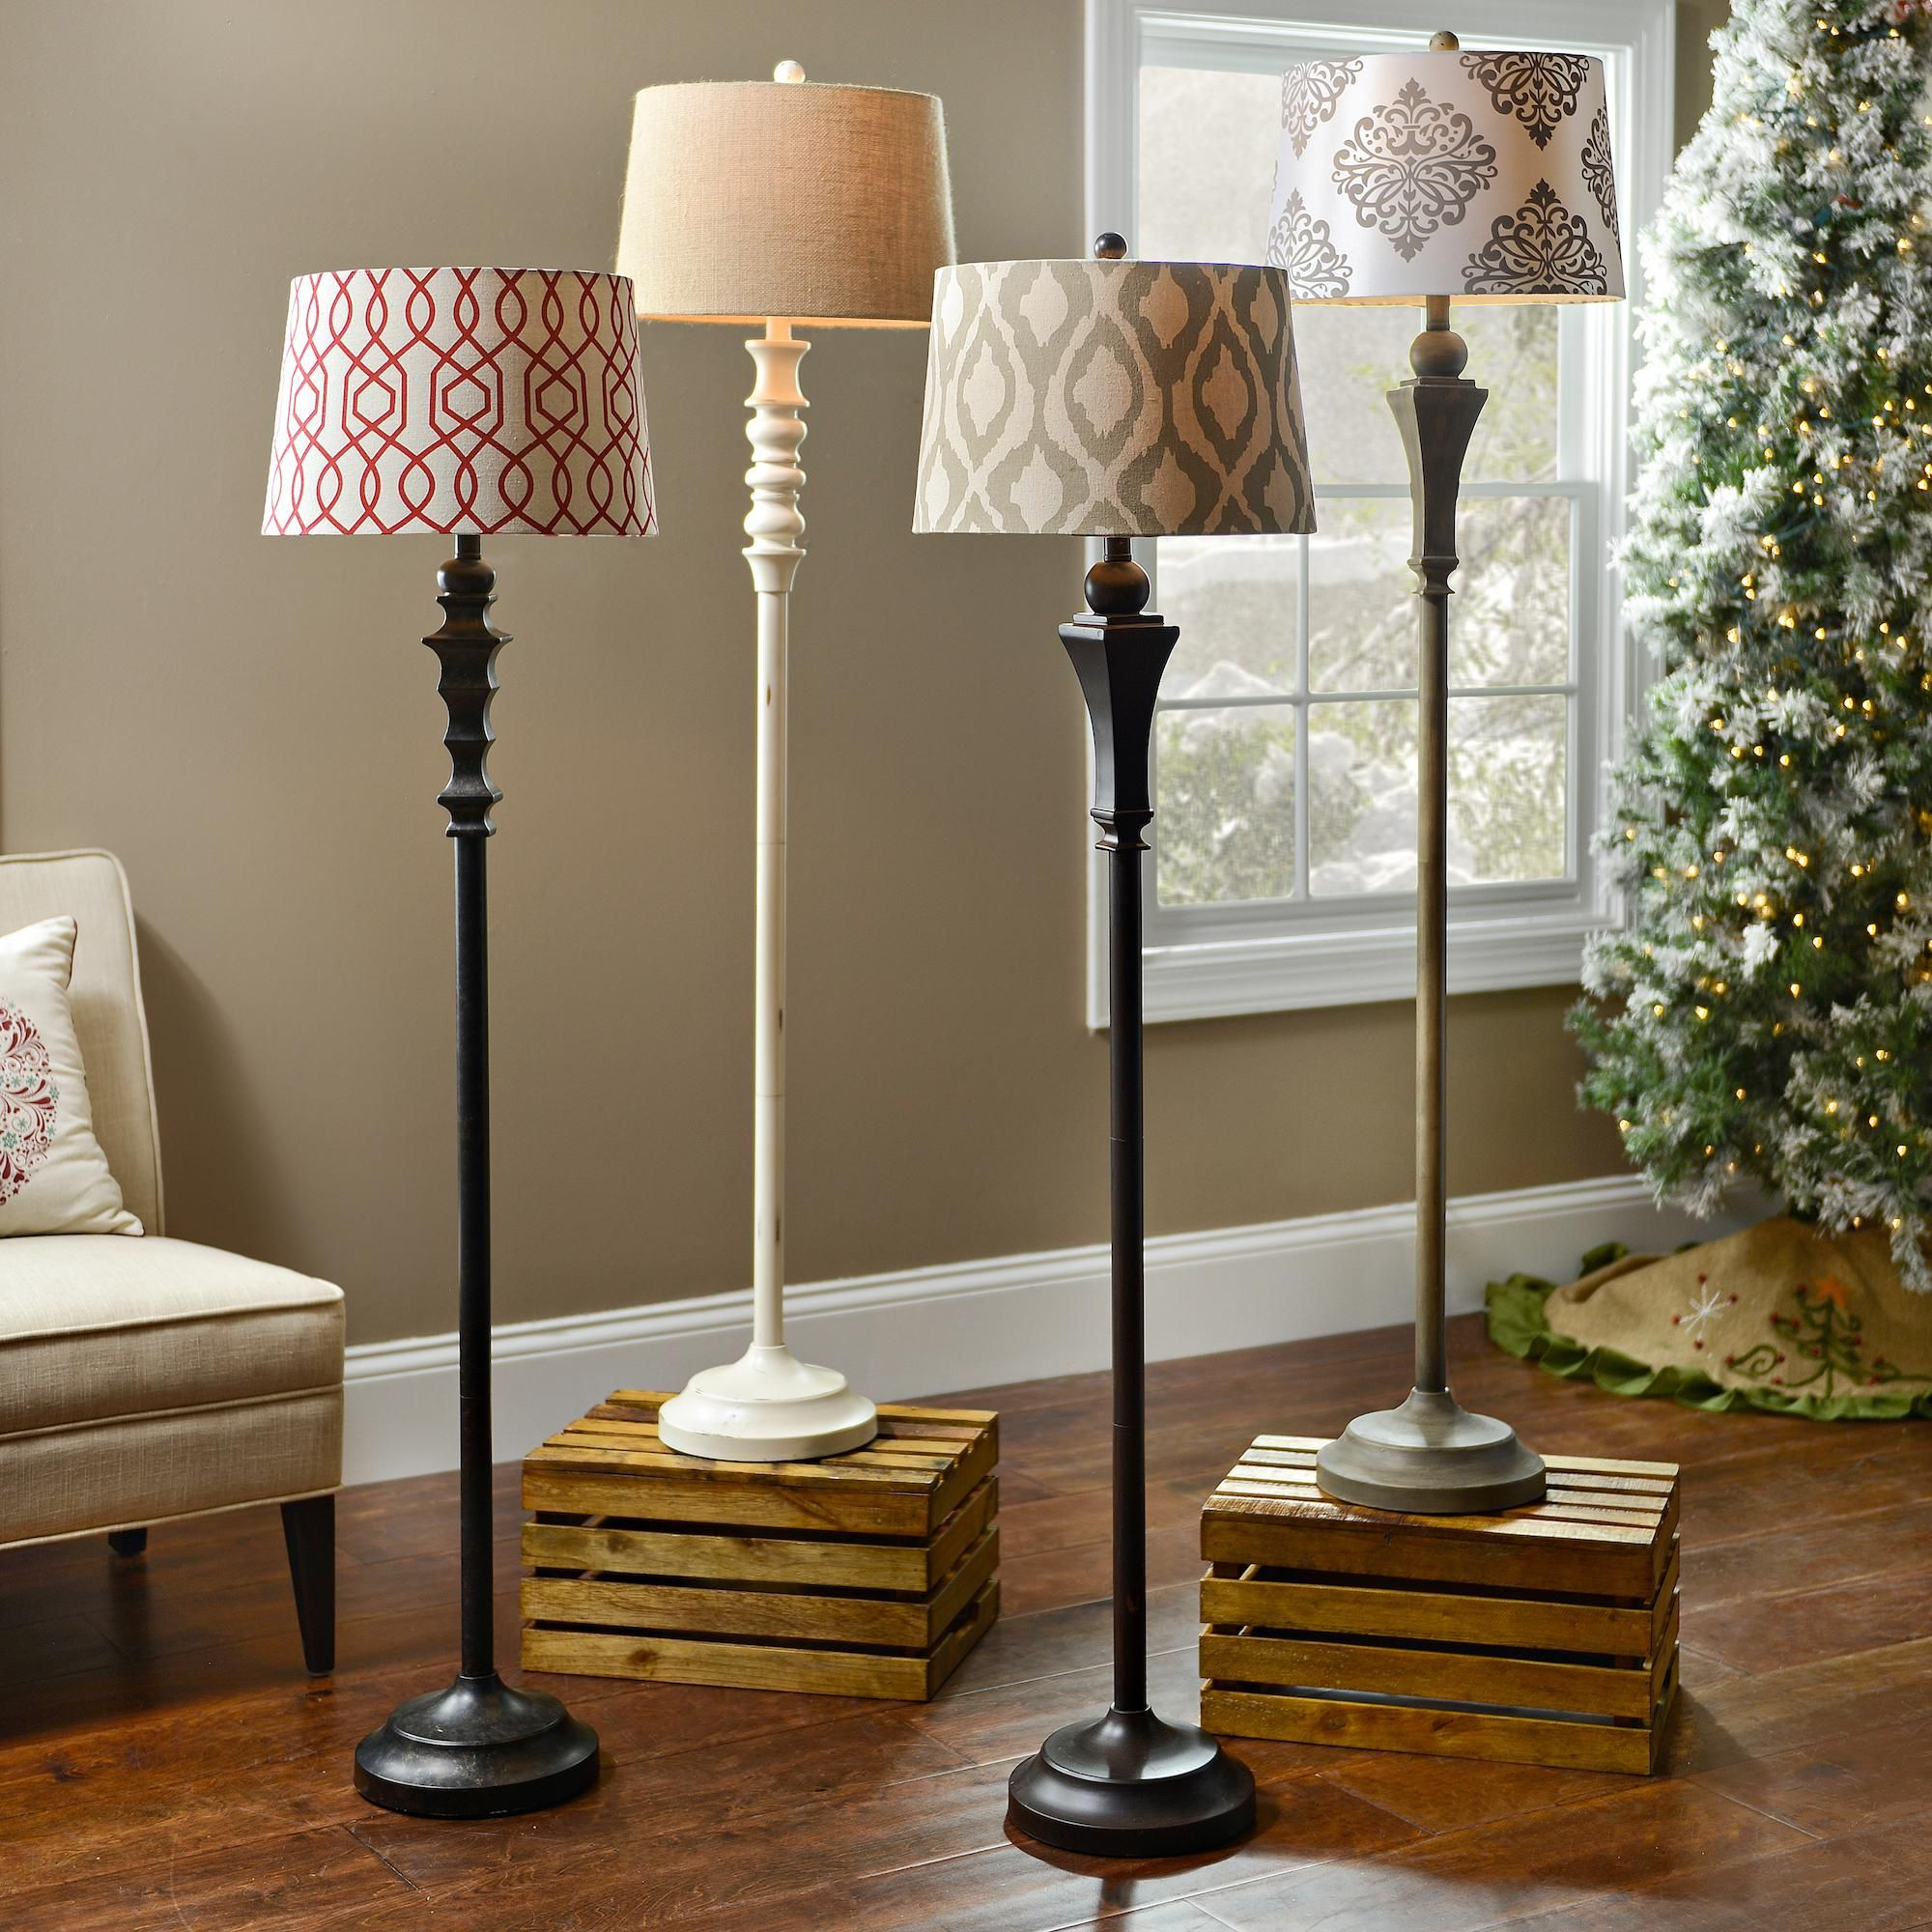 Add Light To A Dim Corner With A Stylish Floor Lamp Floor Lamps